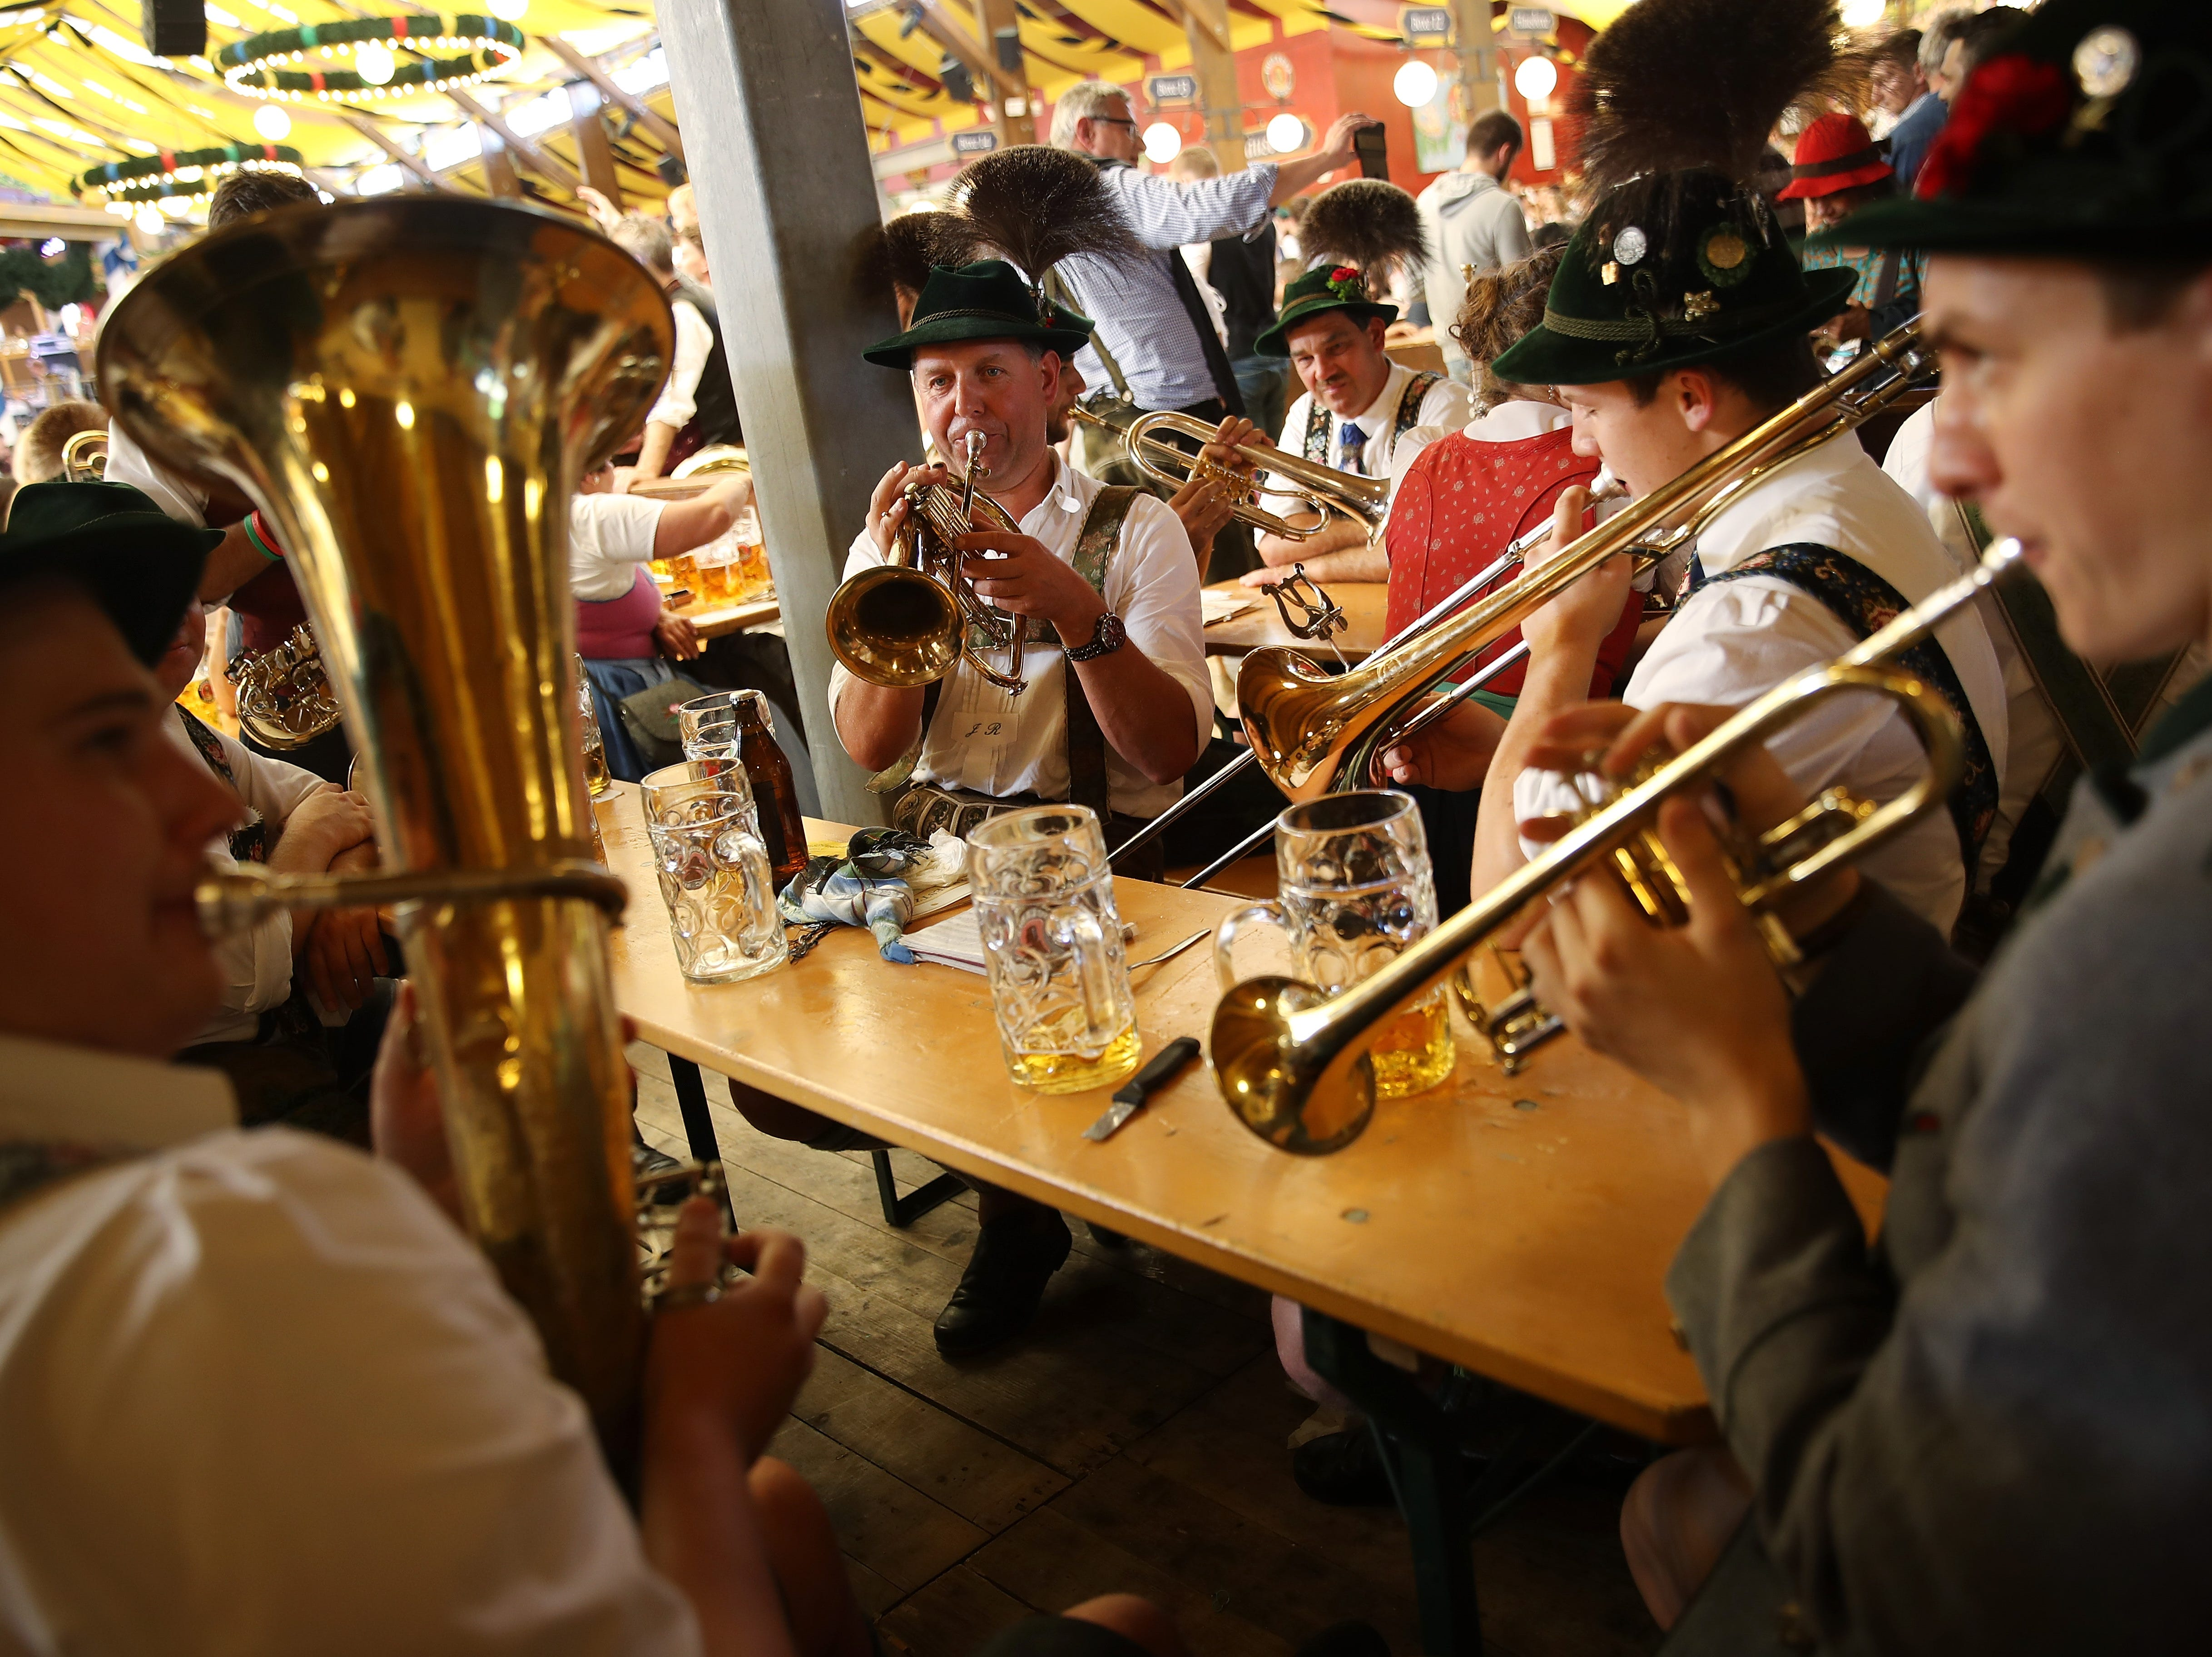 Members of a traditional Bavarian brass band play music while drinking beer in the Paulaner tent following the Oktoberfest parade of costumes of folk and crafts associations on the second day of the 2018 Oktoberfest beer festival on Sept. 23, 2018 in Munich, Germany.